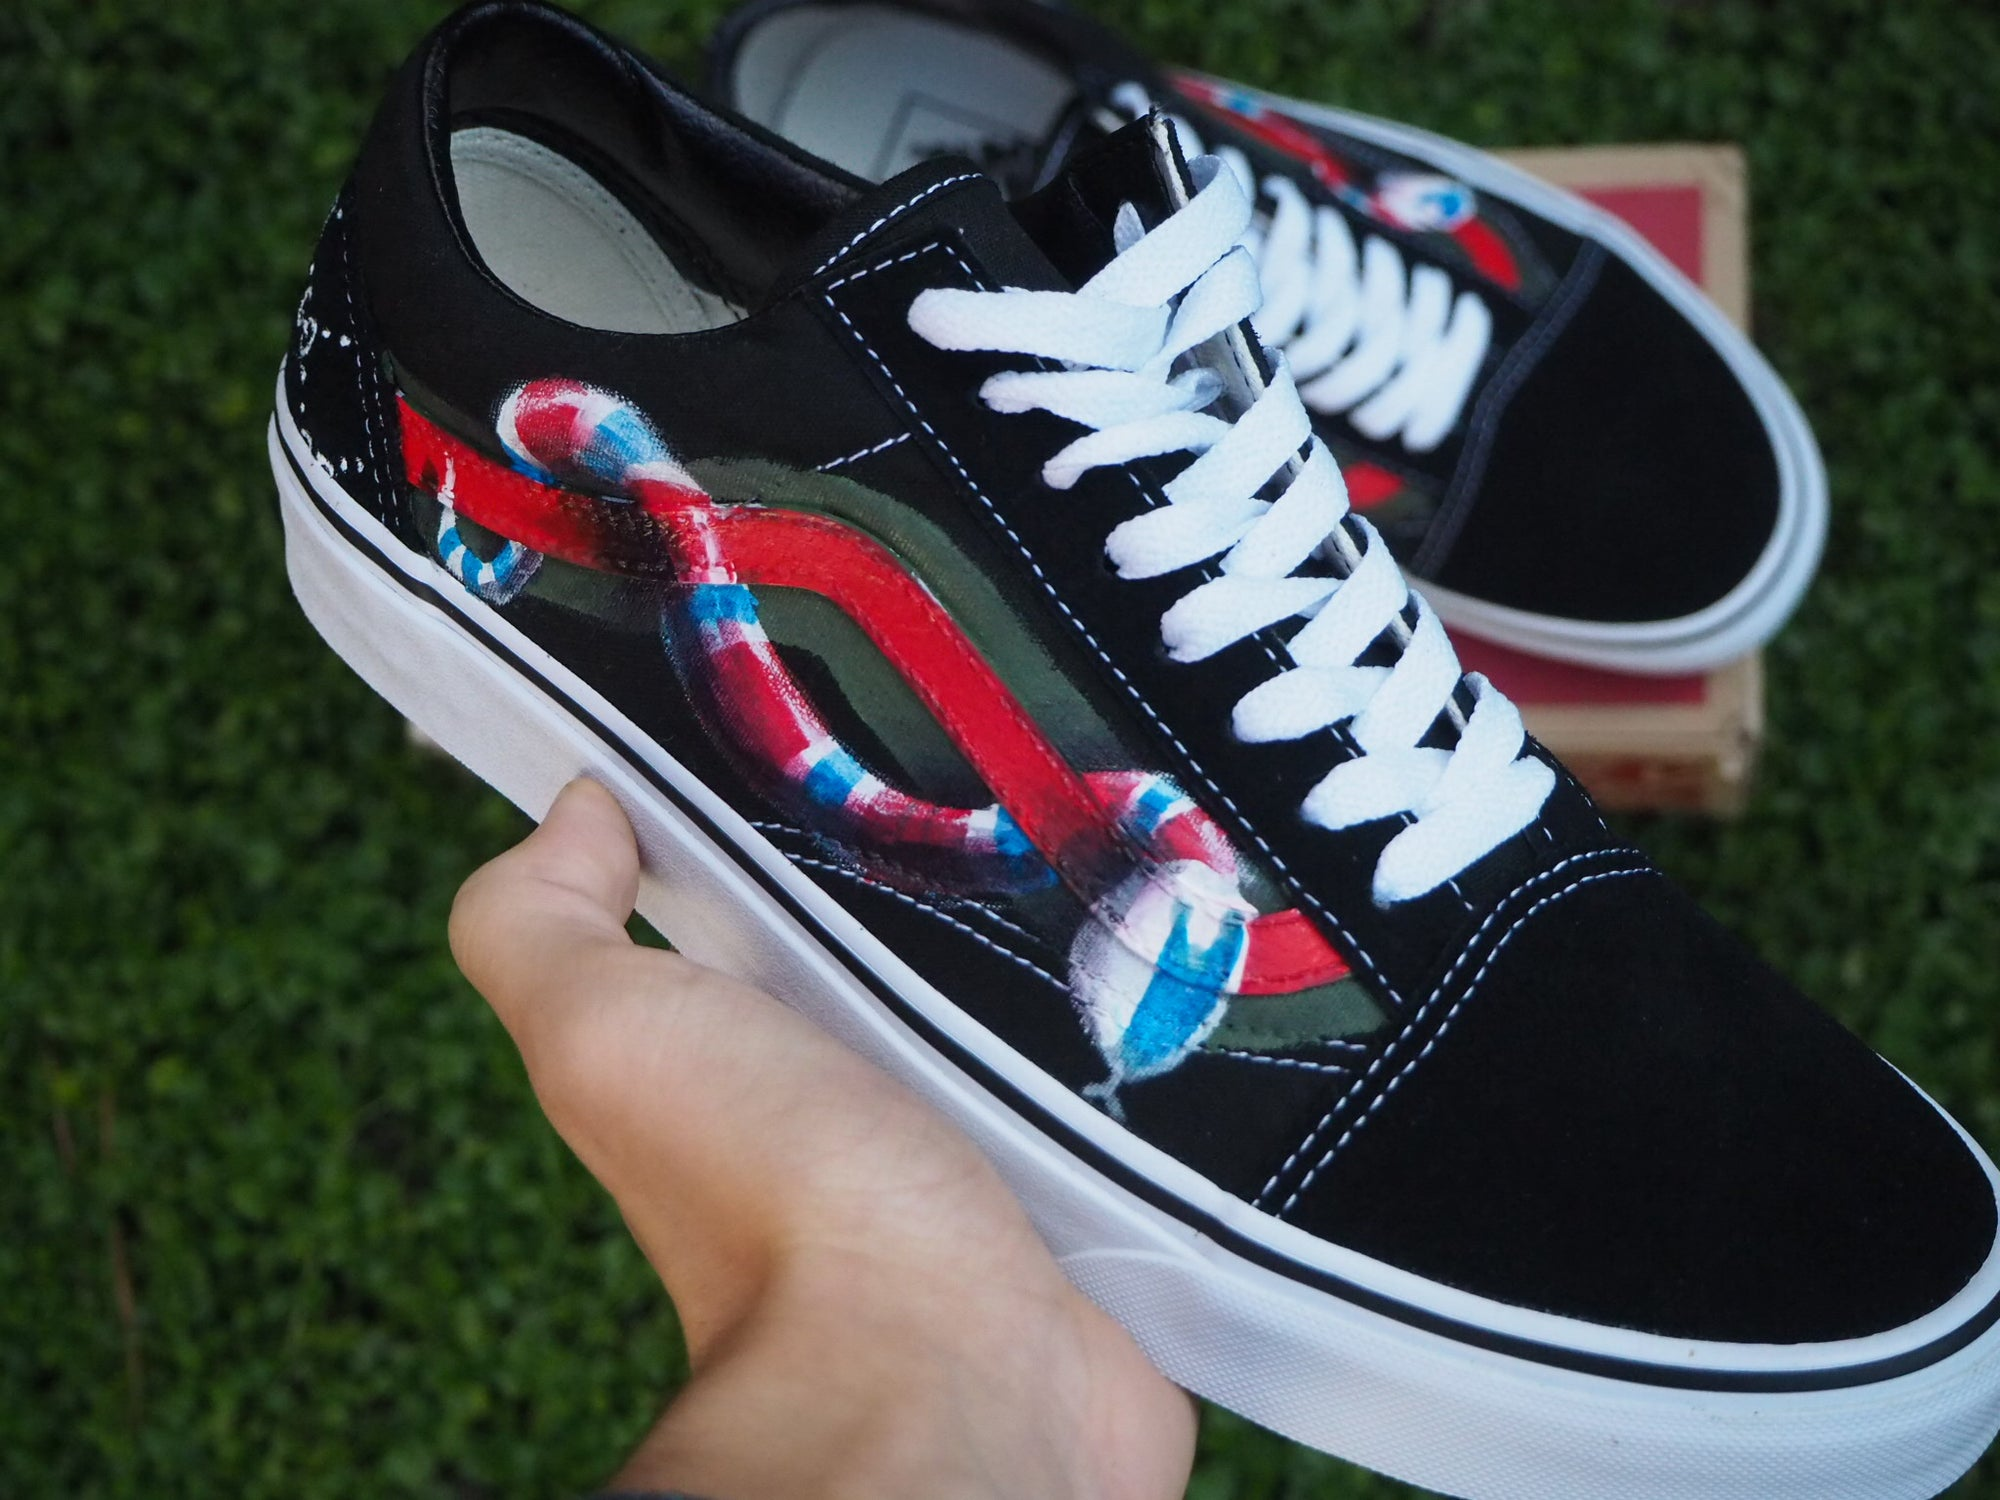 459df7faf32 Image of VANS OLD SKOOL X GUCCI SNAKE